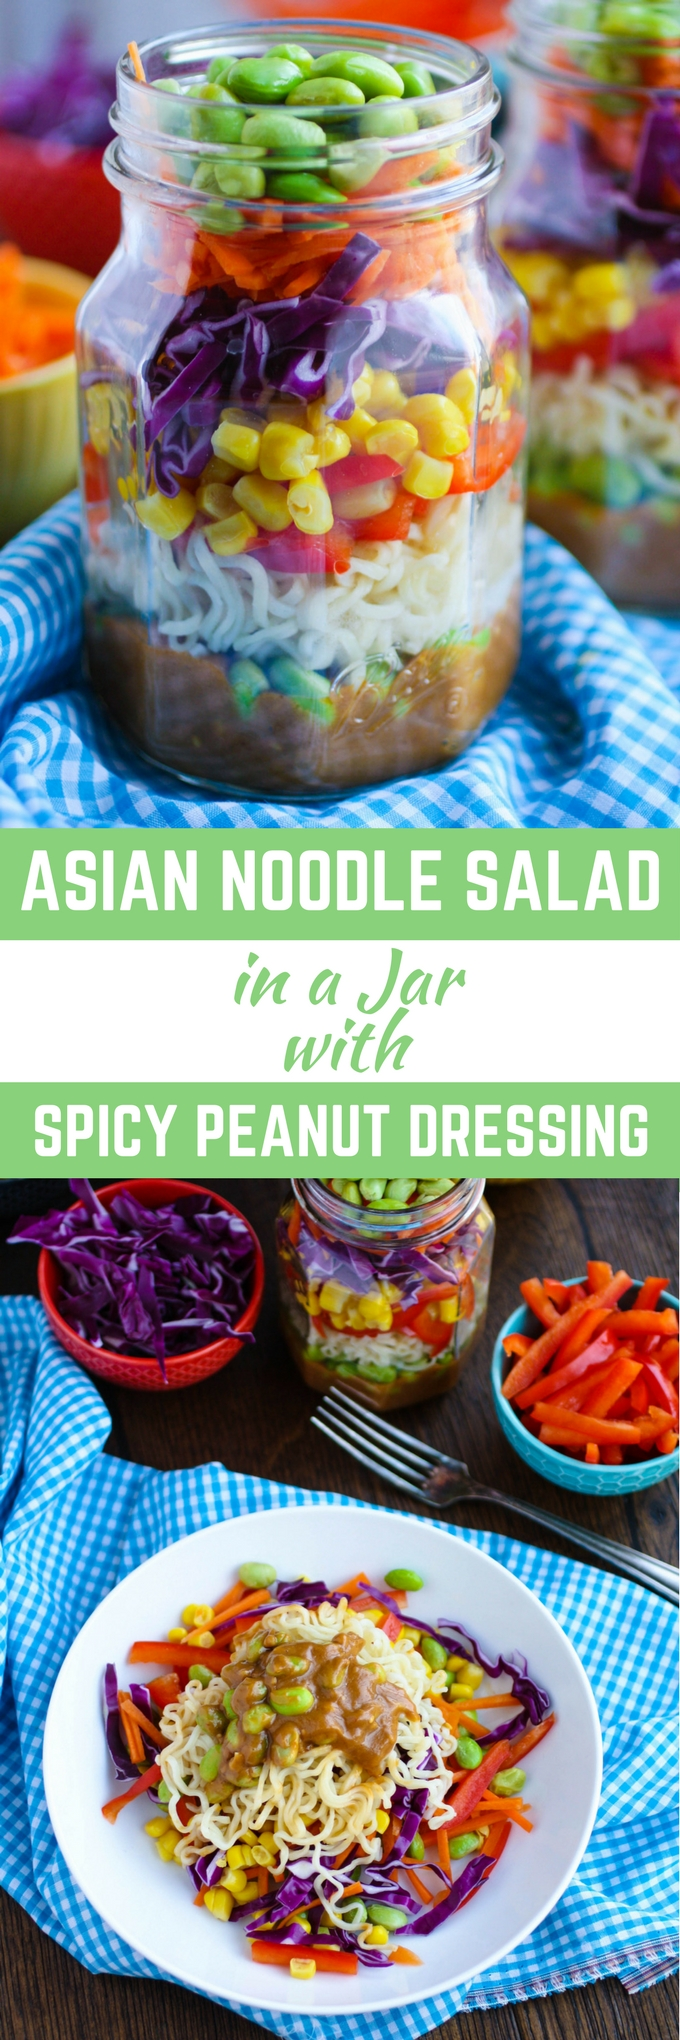 Asian Noodle Salad in a Jar with Spicy Peanut Dressing makes a great summer meal. You'll also love it as a take-to-work lunch. Super convenient, and delicious!